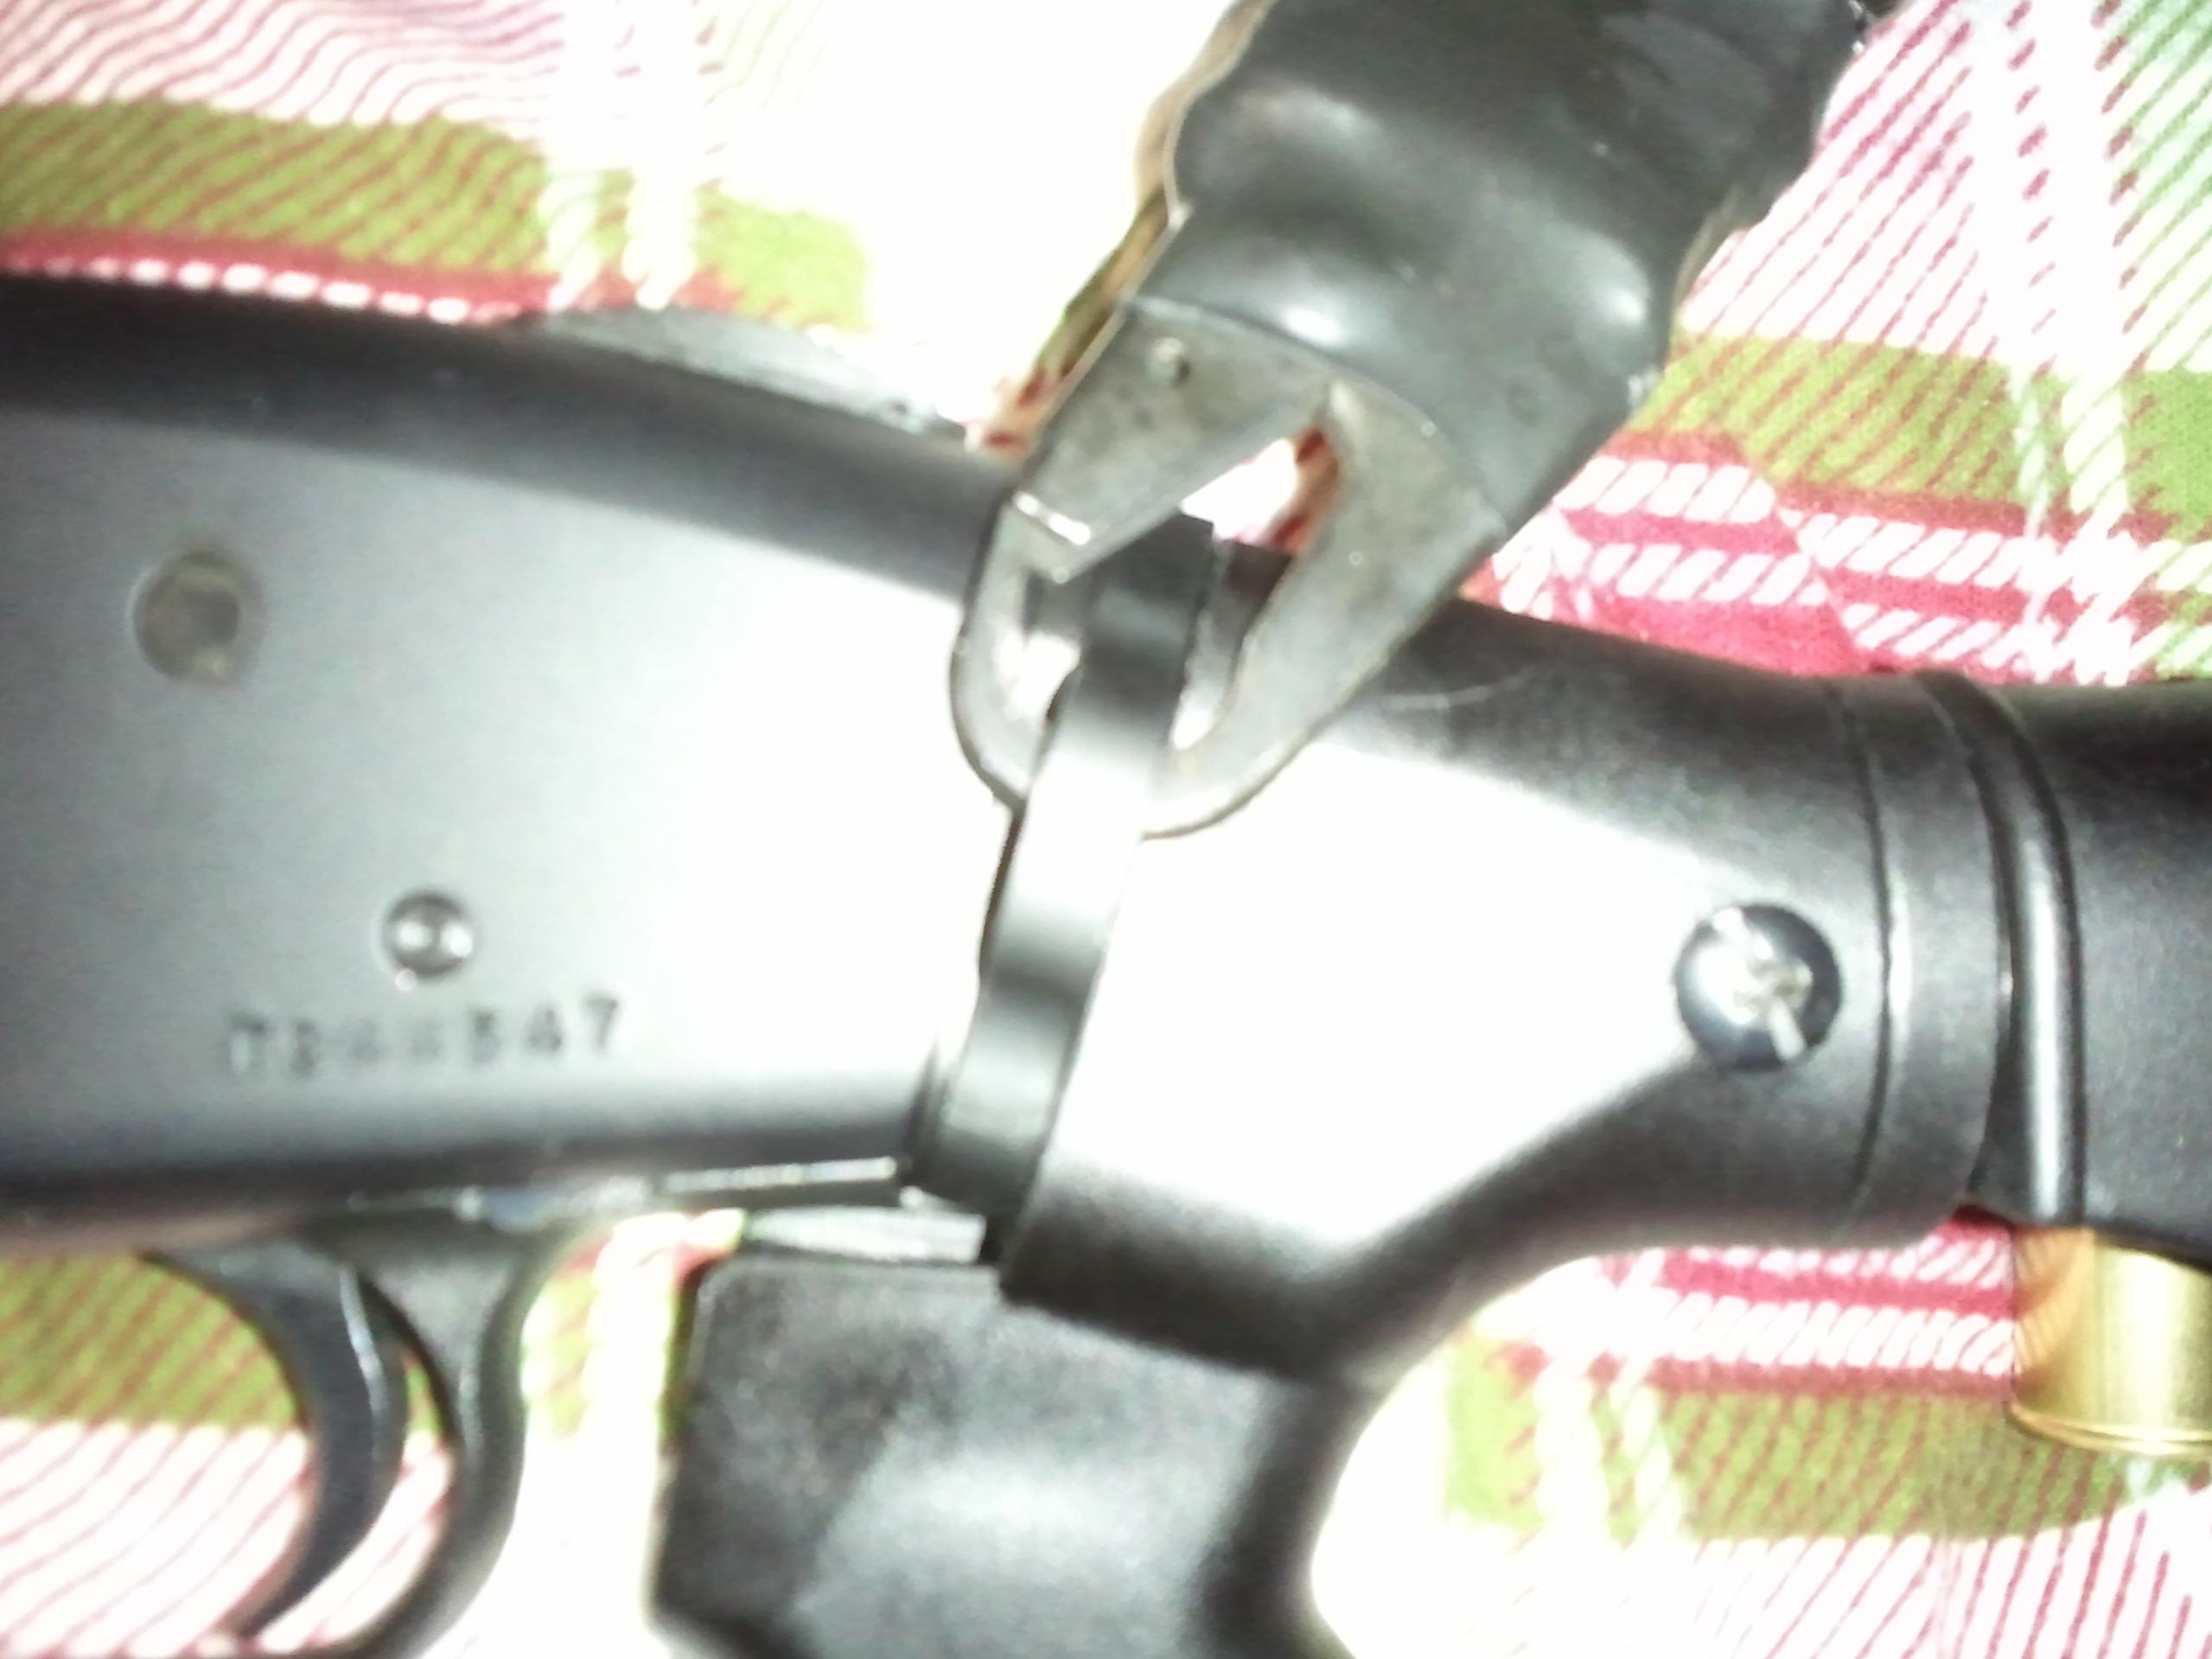 Adding picatinny rail to a stock Mossberg foregrip. Help!-2011-12-15_17.16.26.jpg